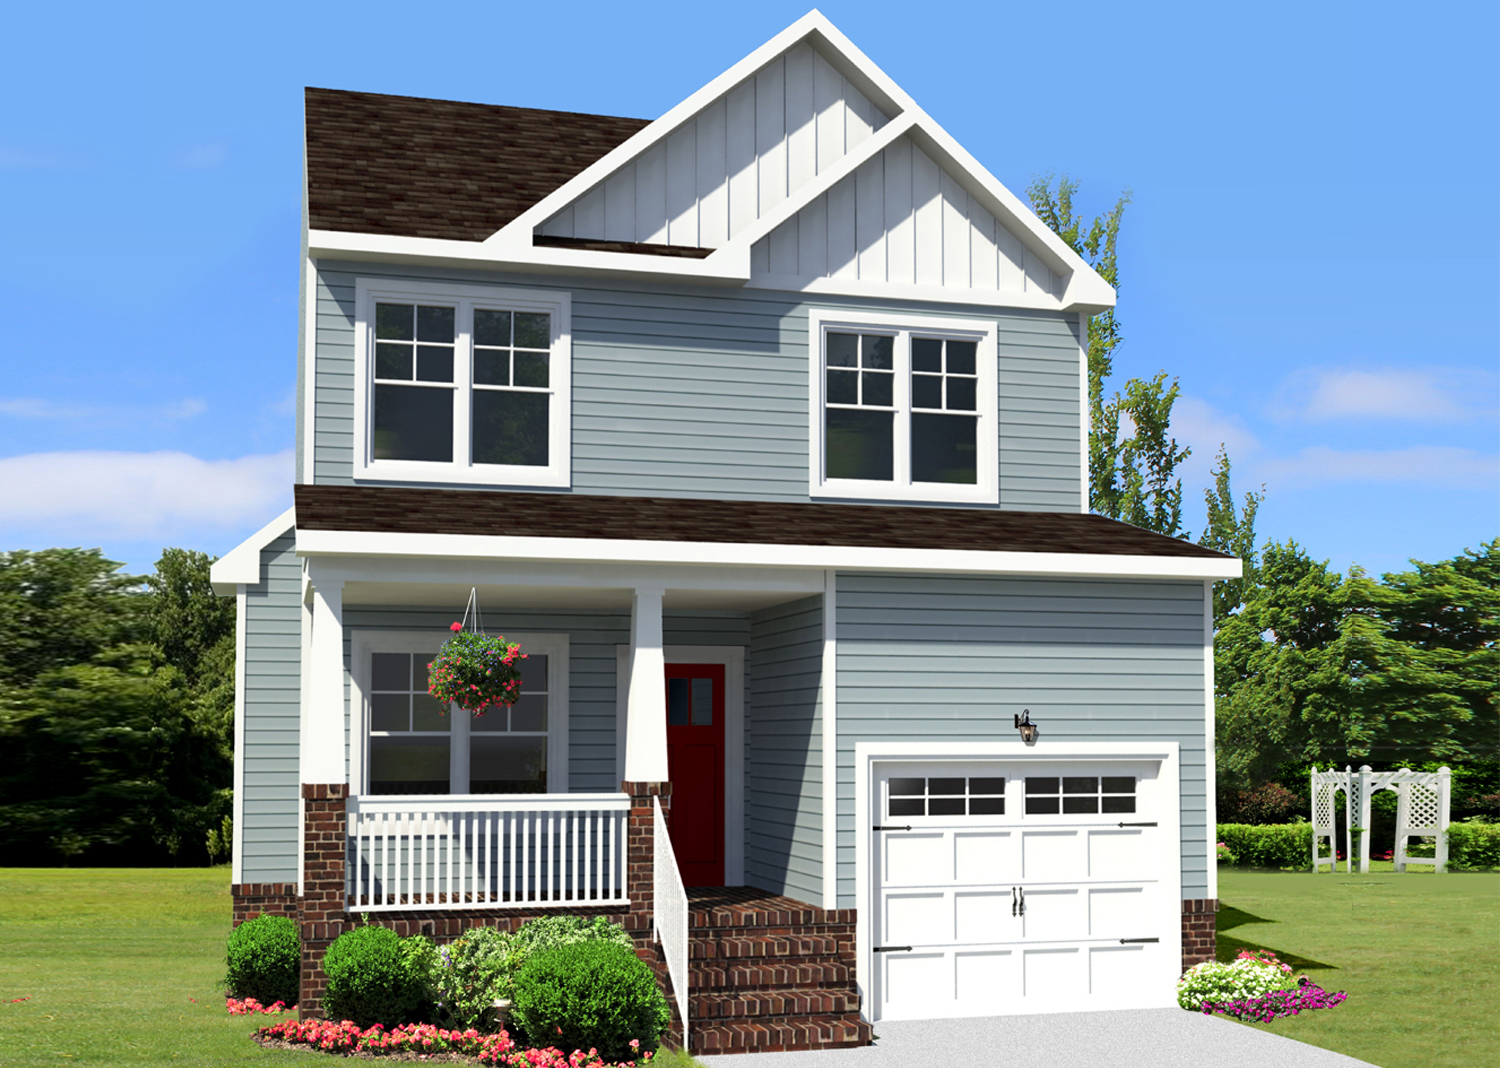 The Hillcrest Model custom new home Suffolk VA with AB Homes with blue siding and white trim